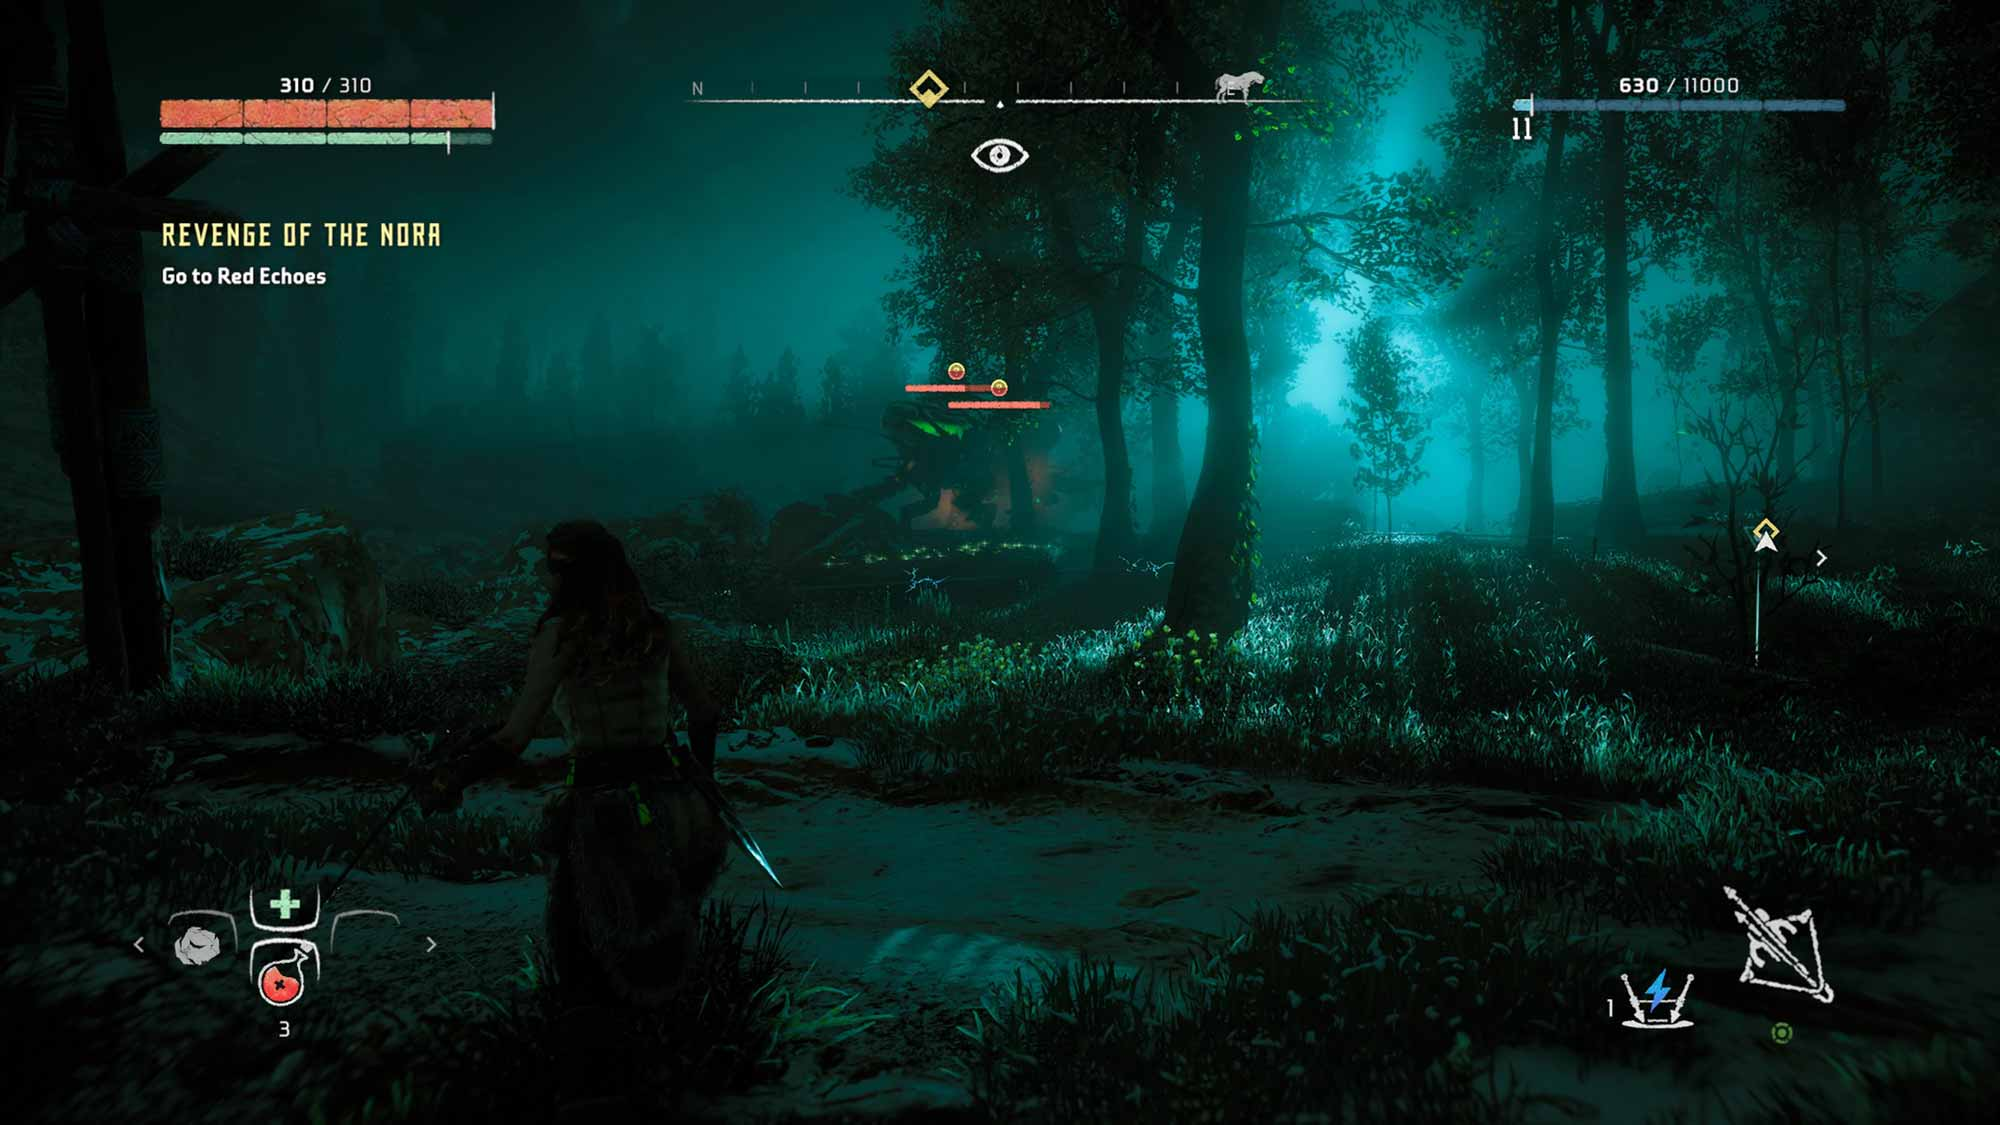 Horizon Zero Dawn nighttime screenshot